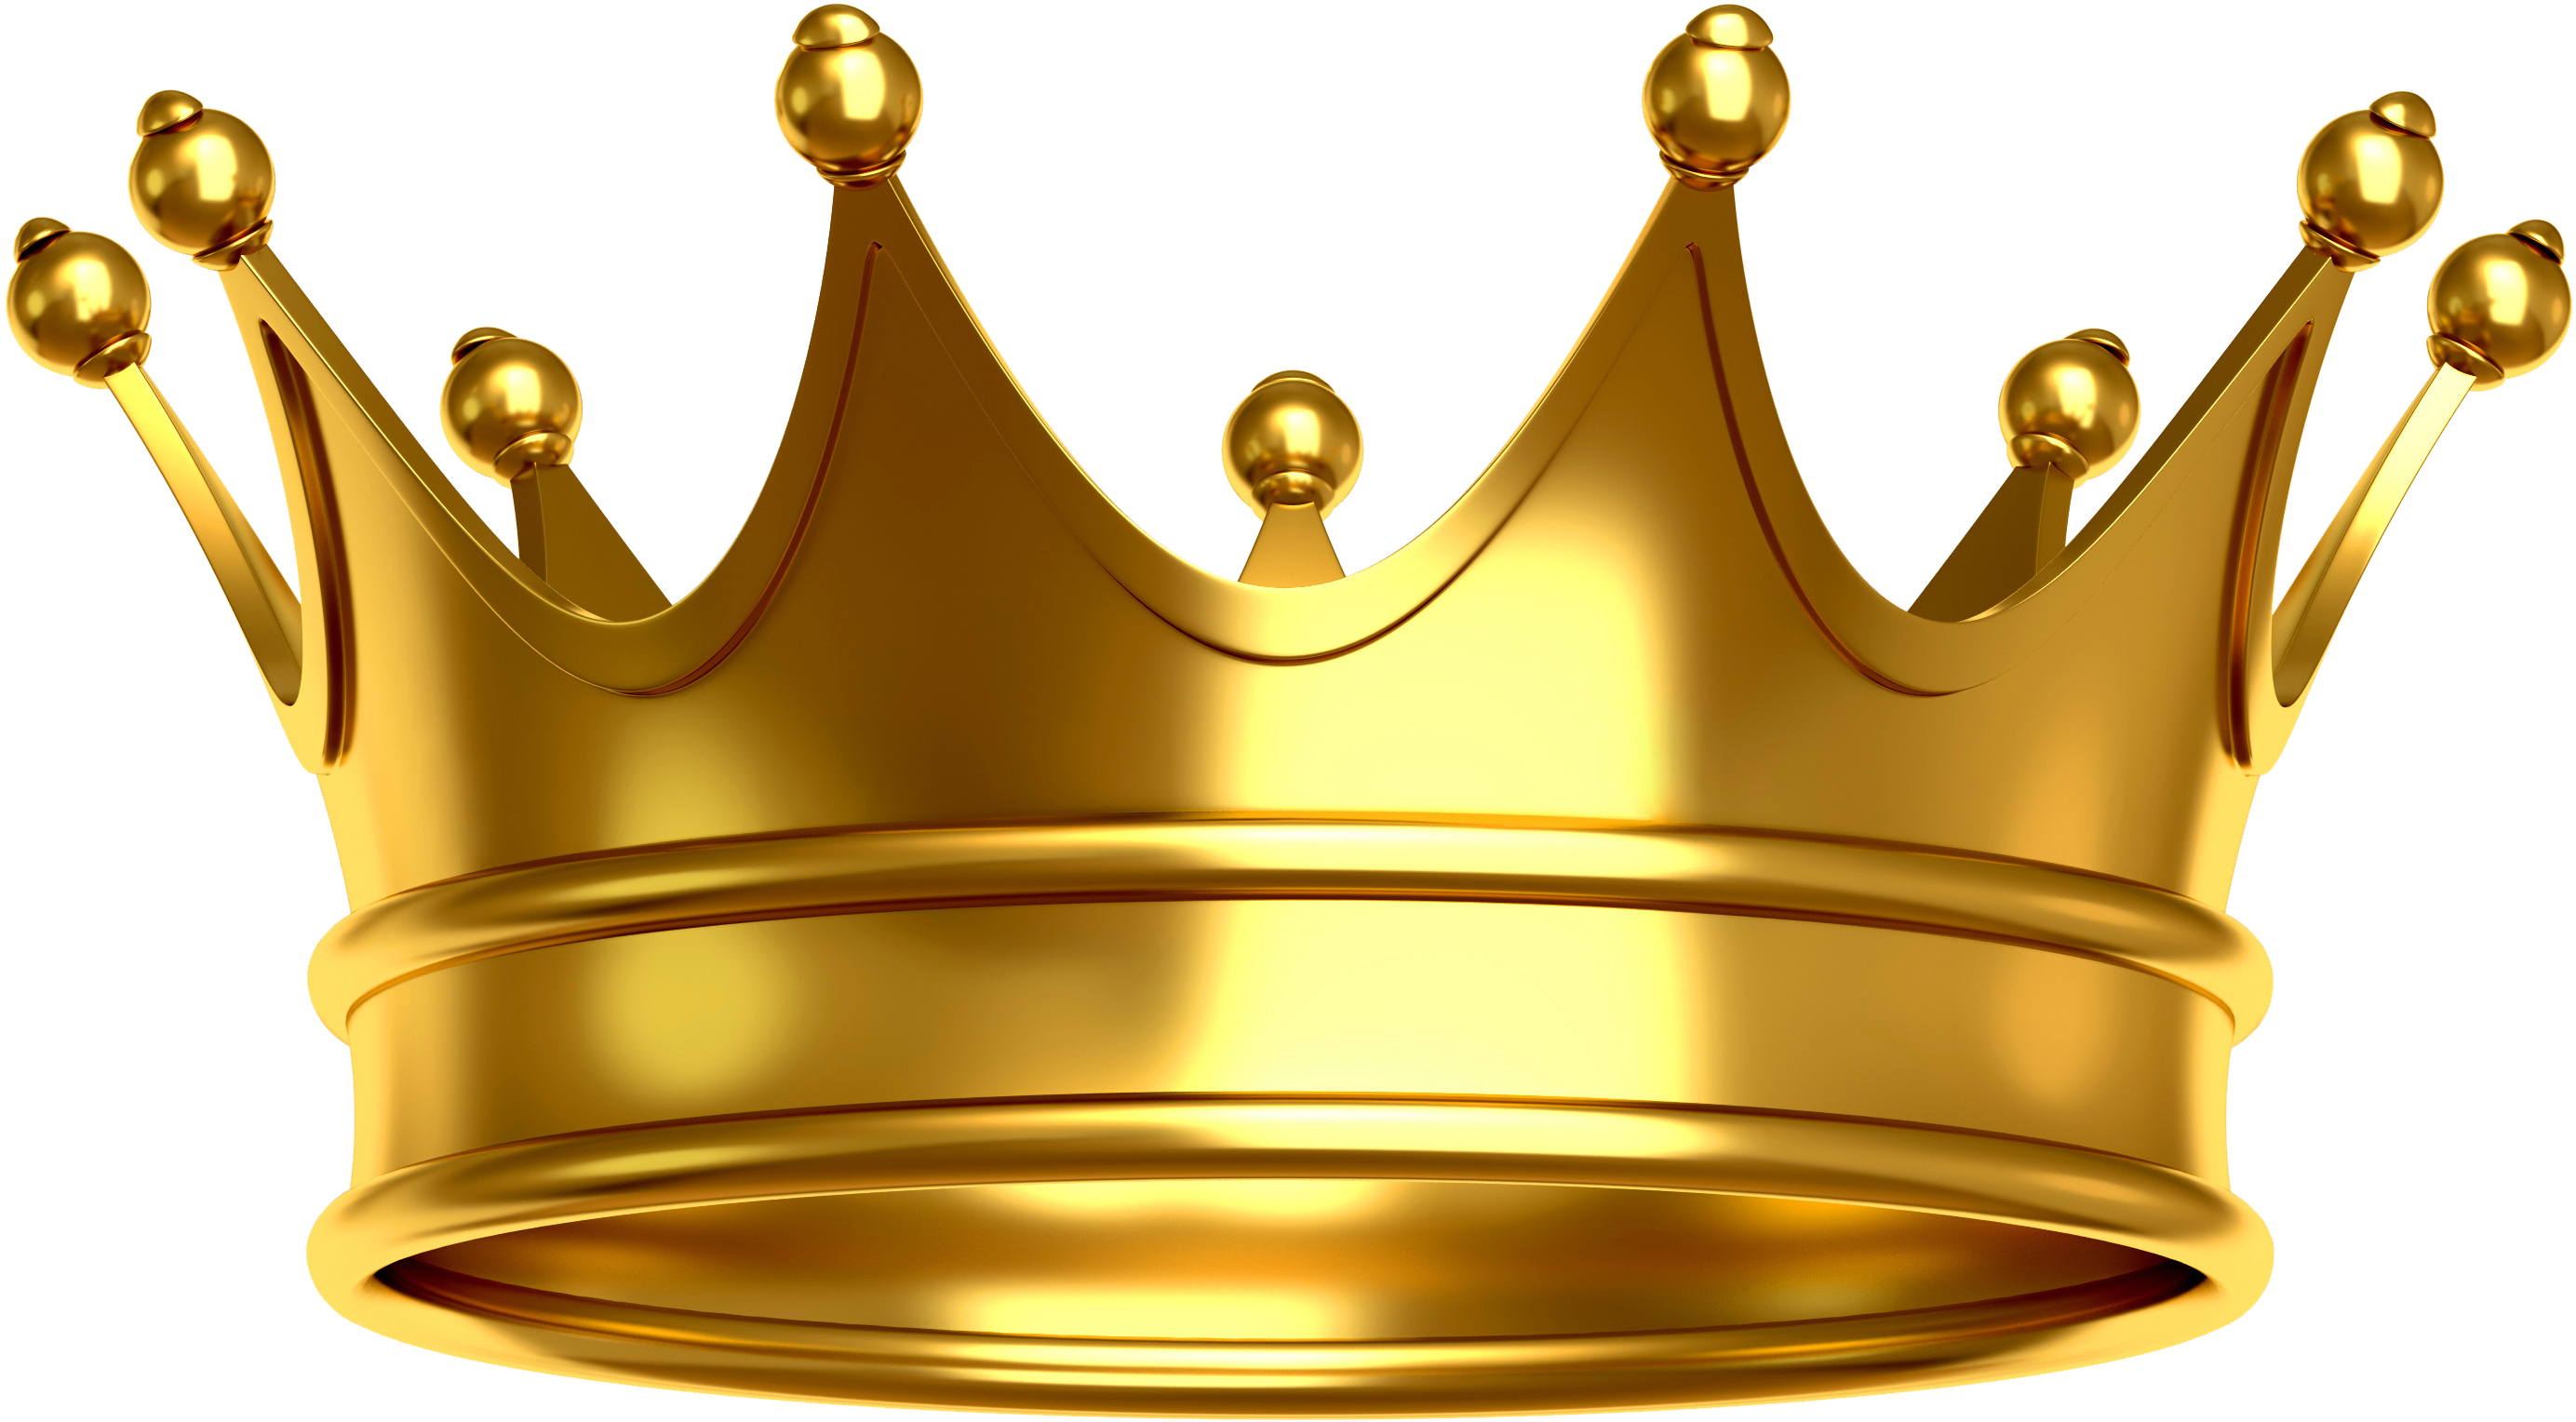 King PNG HD Transparent King HD.PNG Images..